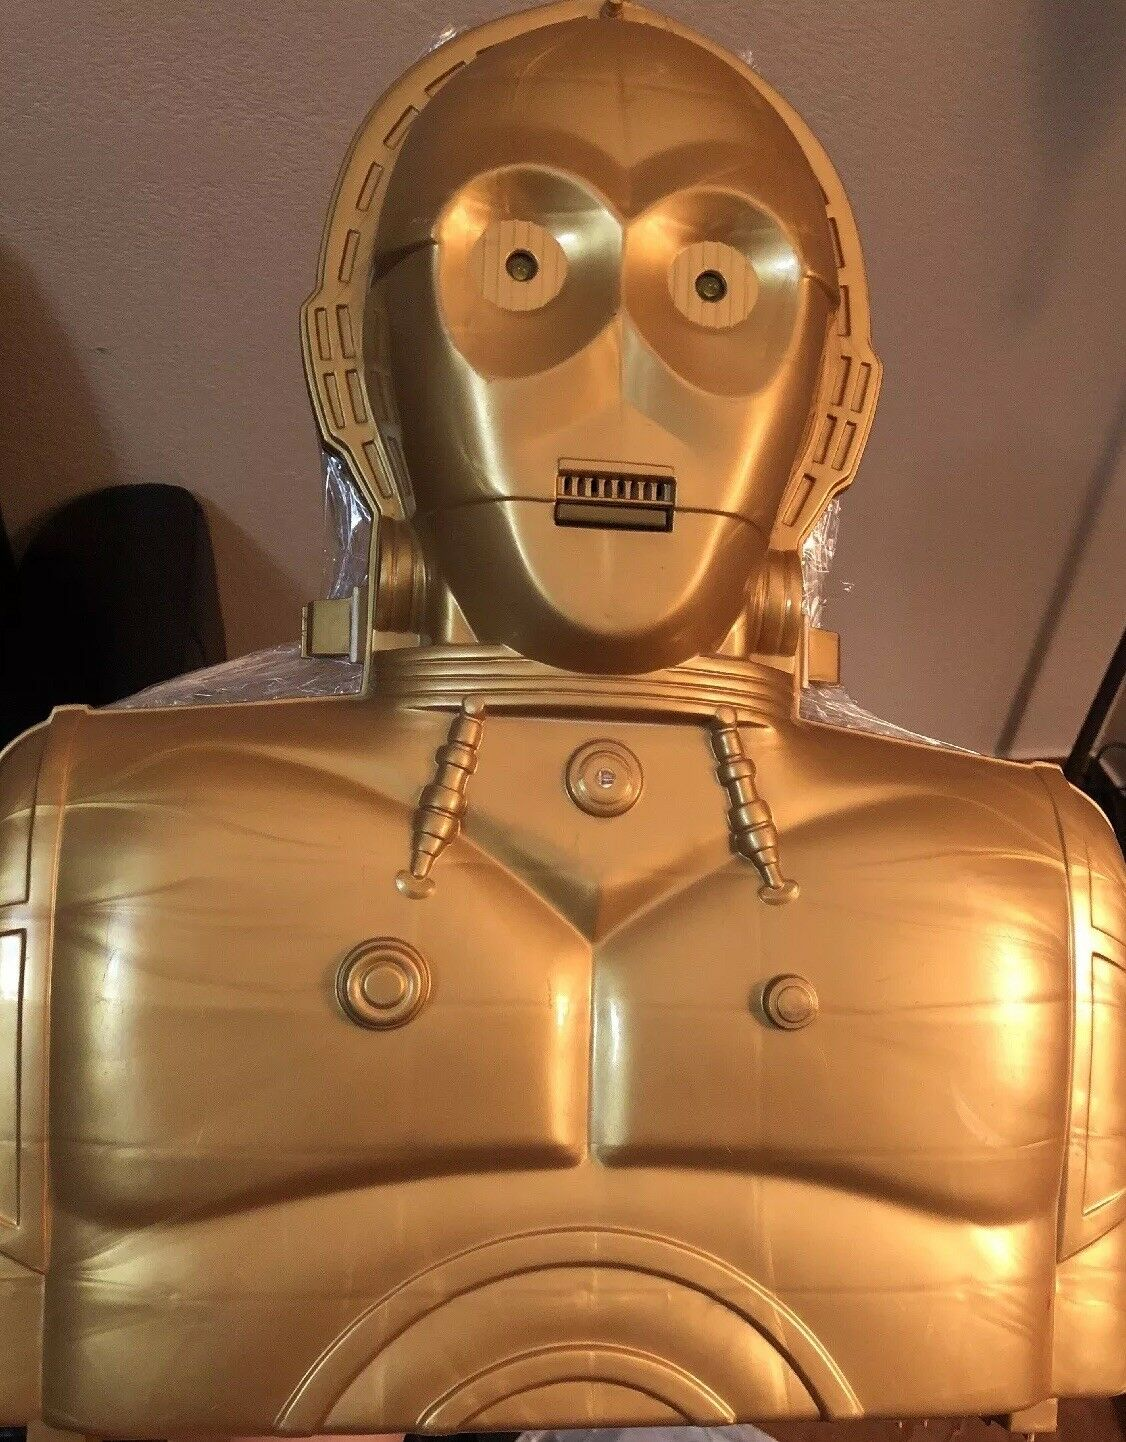 Star wars Colección figures + Electronic Electronic Electronic Talking C-3PO Carry Case 1996 W sound e404c3